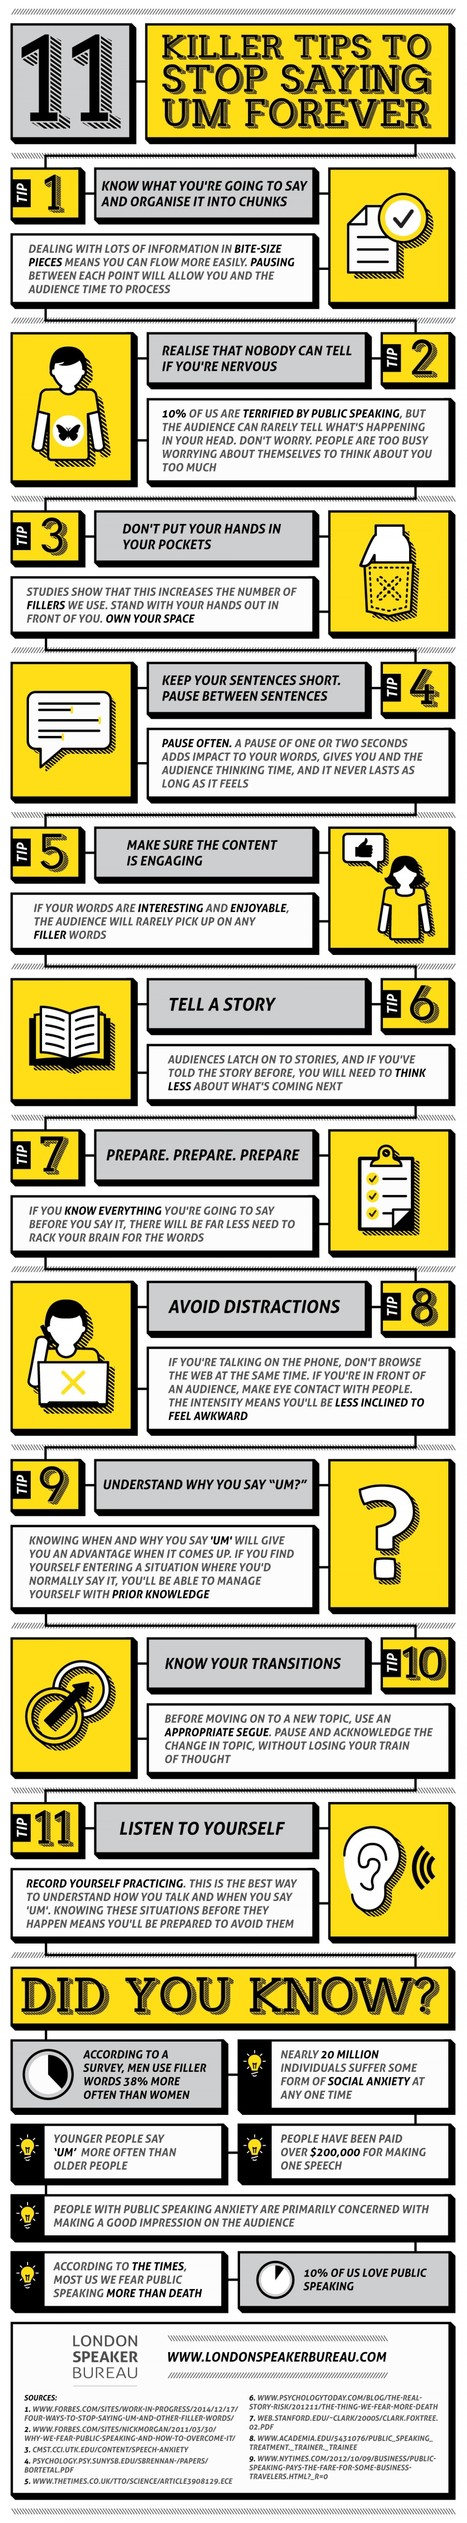 11 amazing ways to Stop Saying 'Um' Forever | All Infographics | Scoop.it